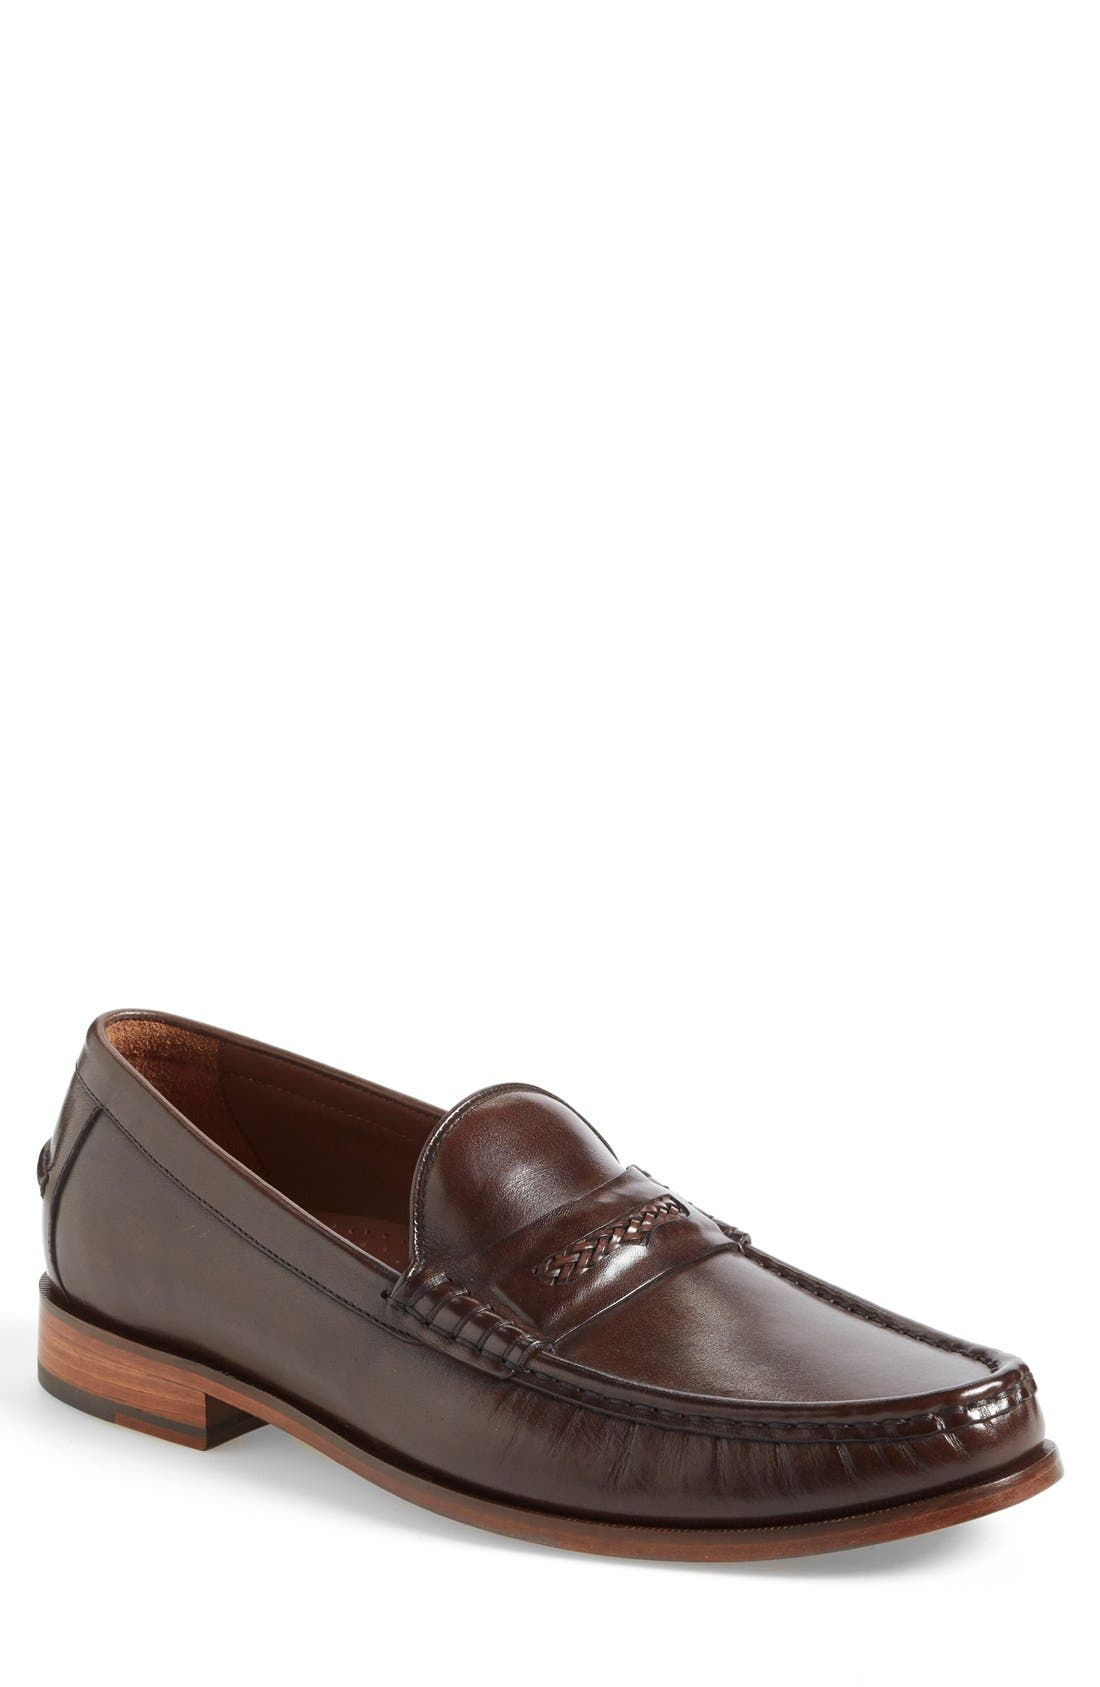 'Pinch Gotham' Penny Loafer,                             Main thumbnail 2, color,